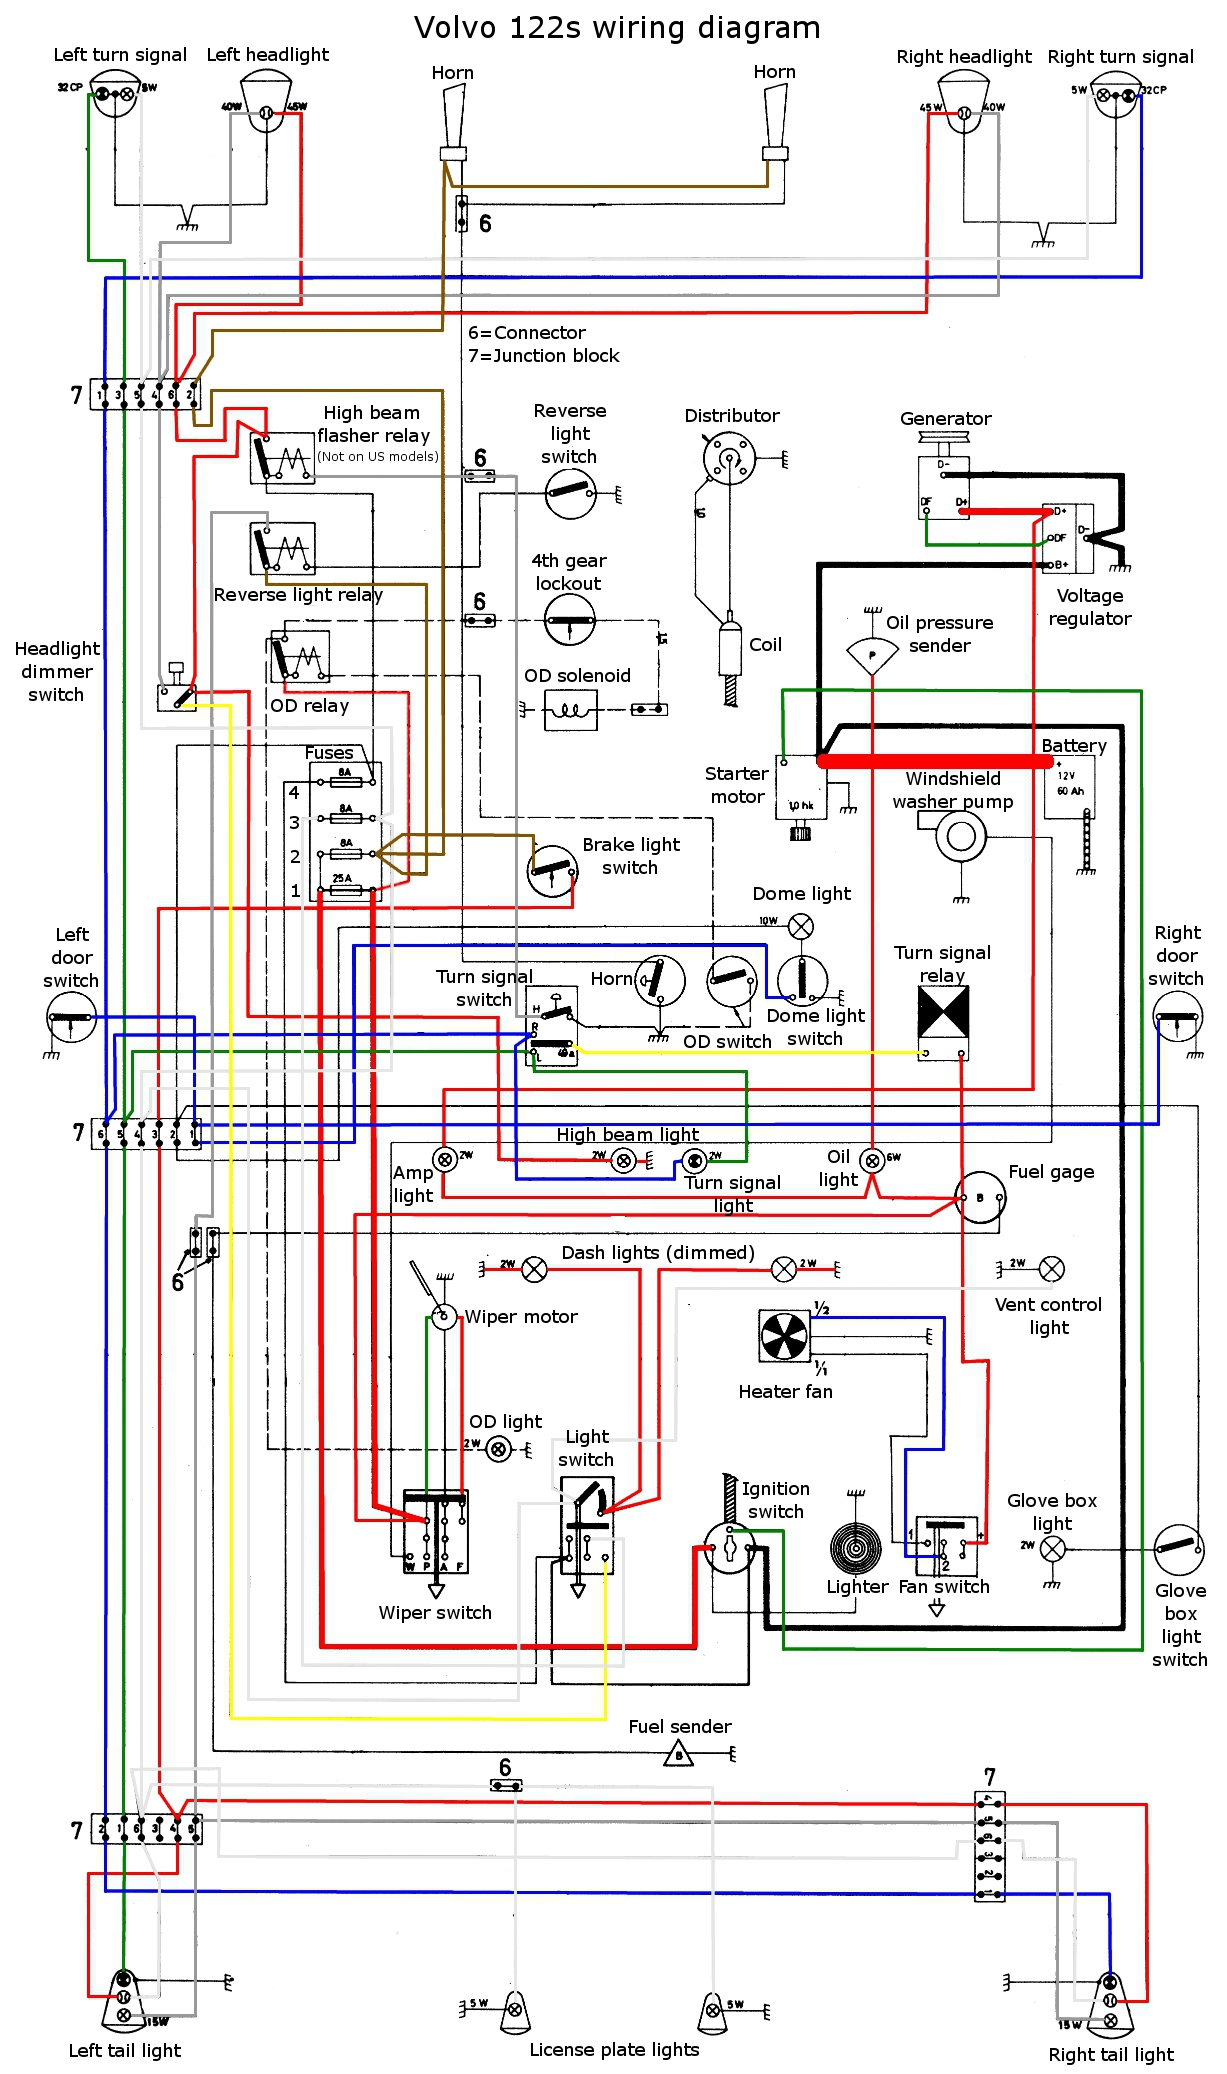 122 wiring diagram color?resize\\\\\\\\\\\\\\\=1227%2C2074 volvo wiring diagrams s60 gandul 45 77 79 119 pc9-401 wiring diagram at fashall.co